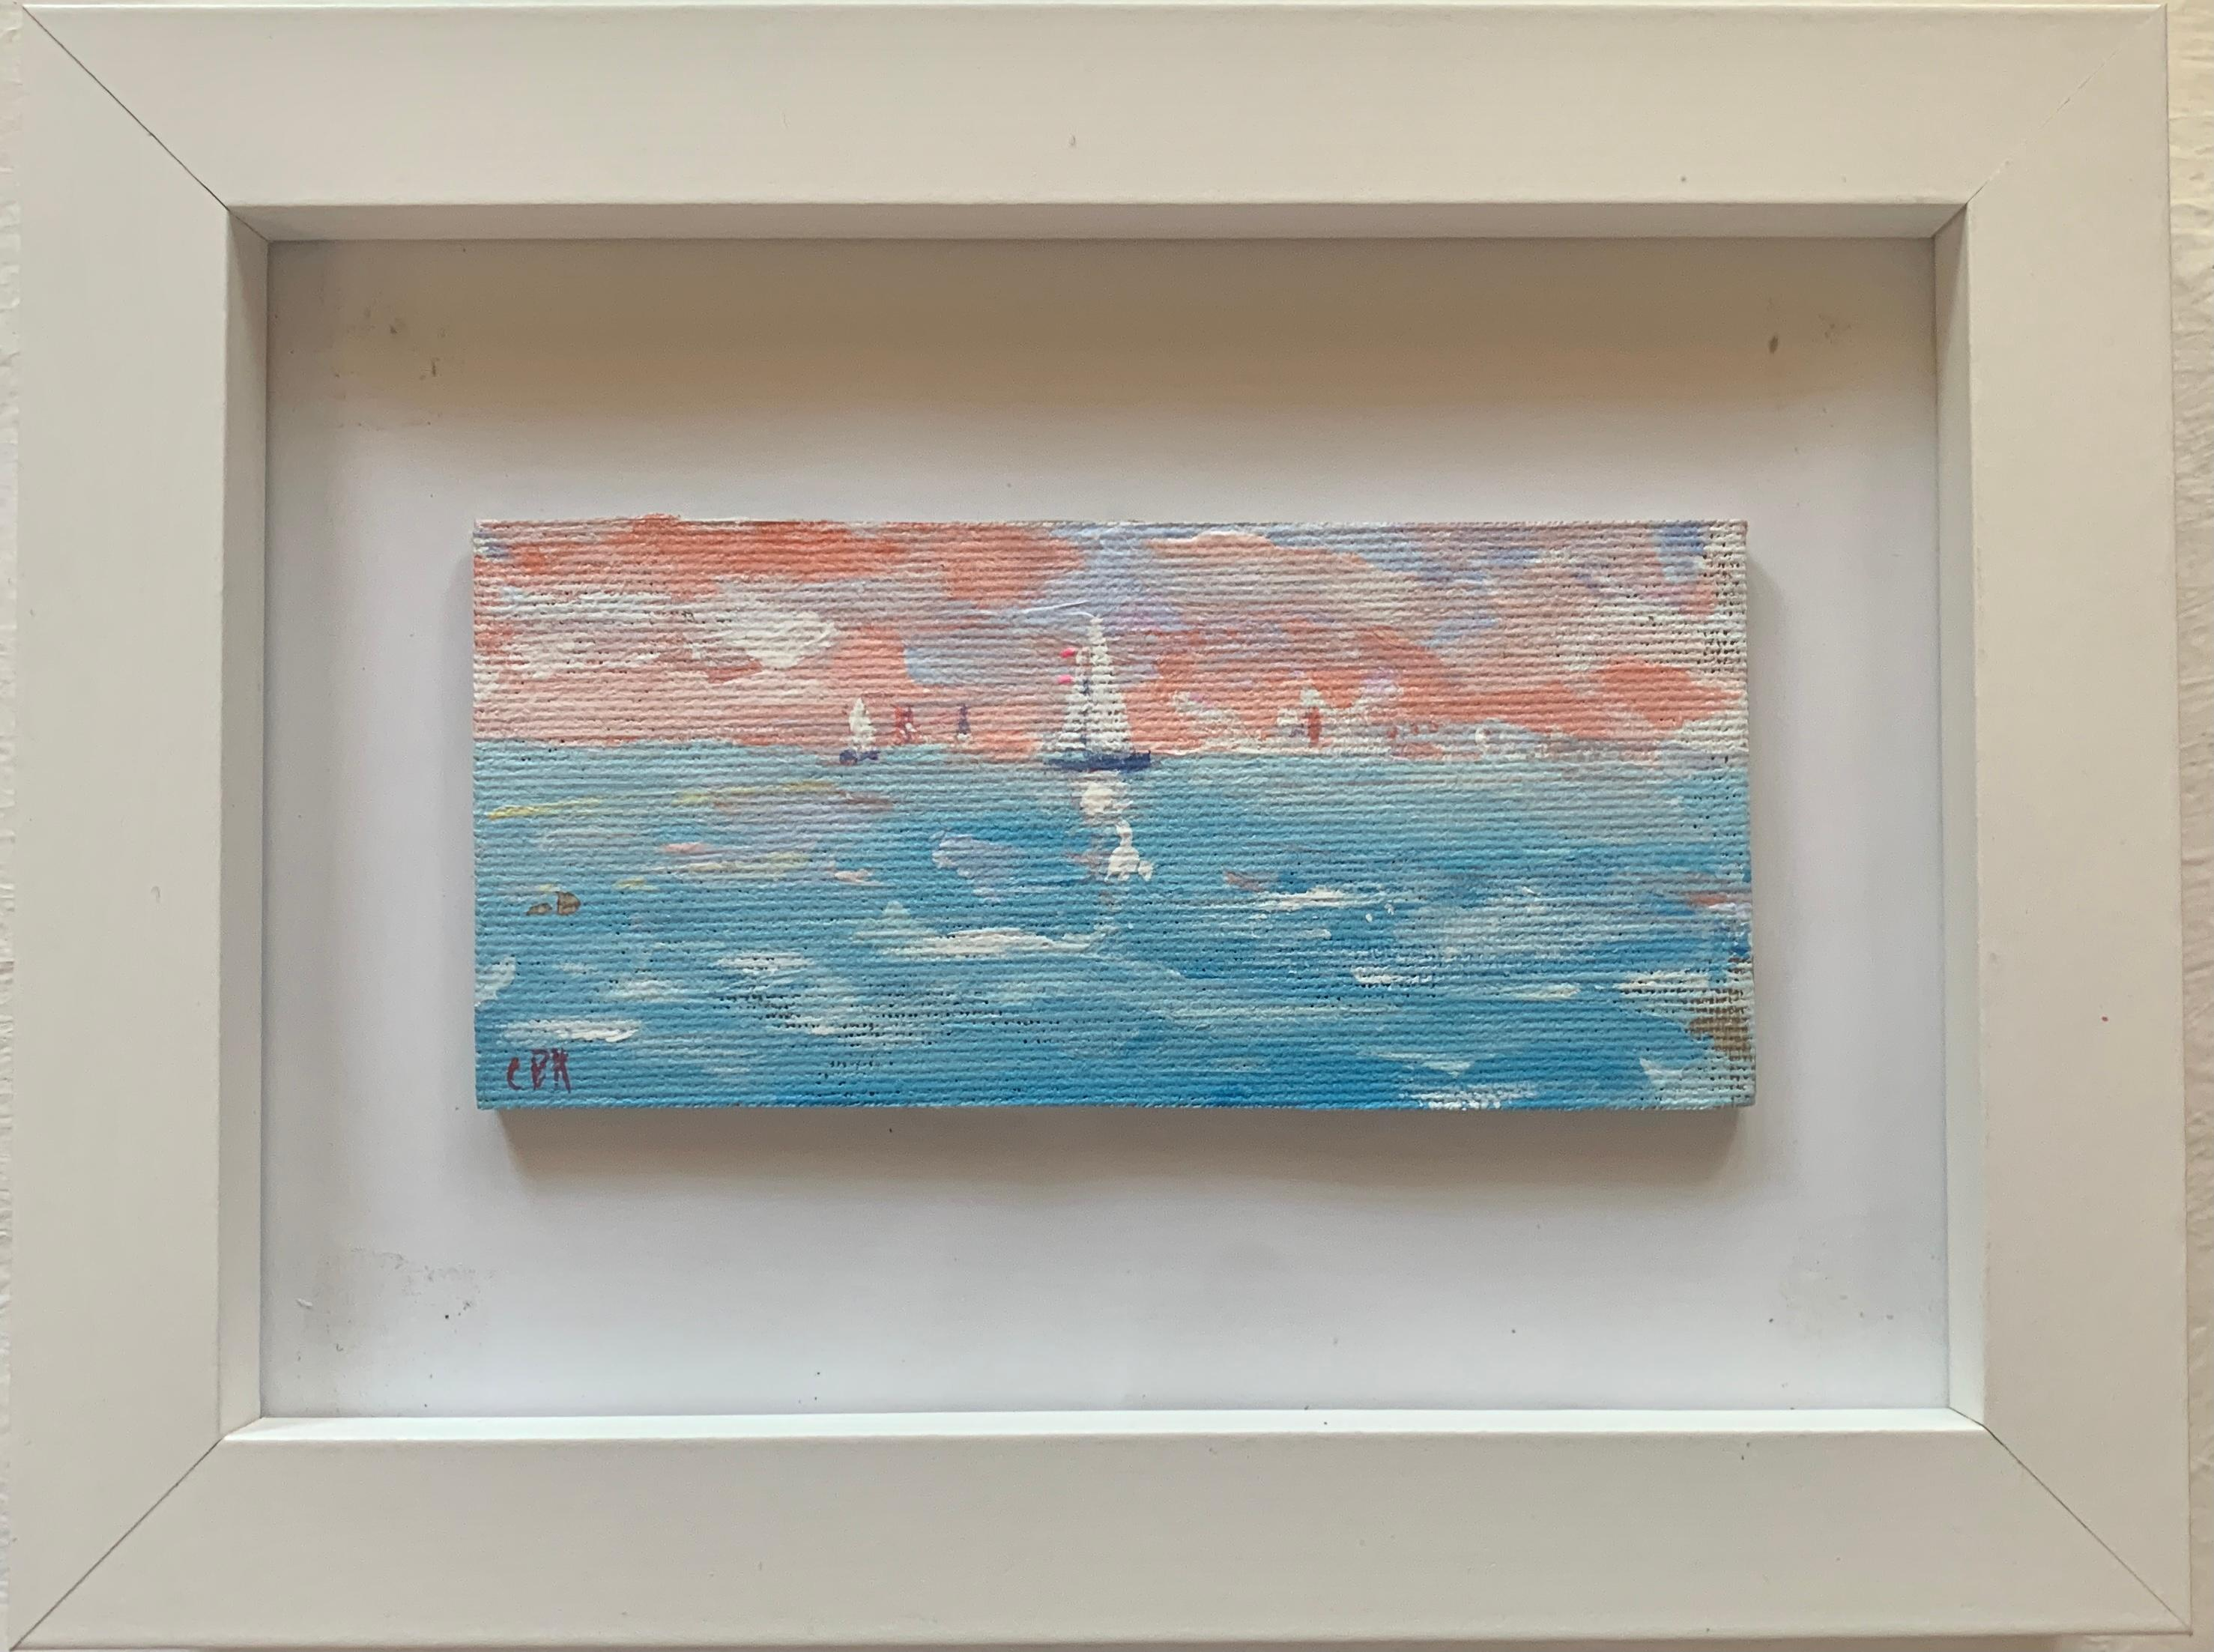 Impressionist oil sketch of yachts off the coast of Nantucket with a Setting Sun